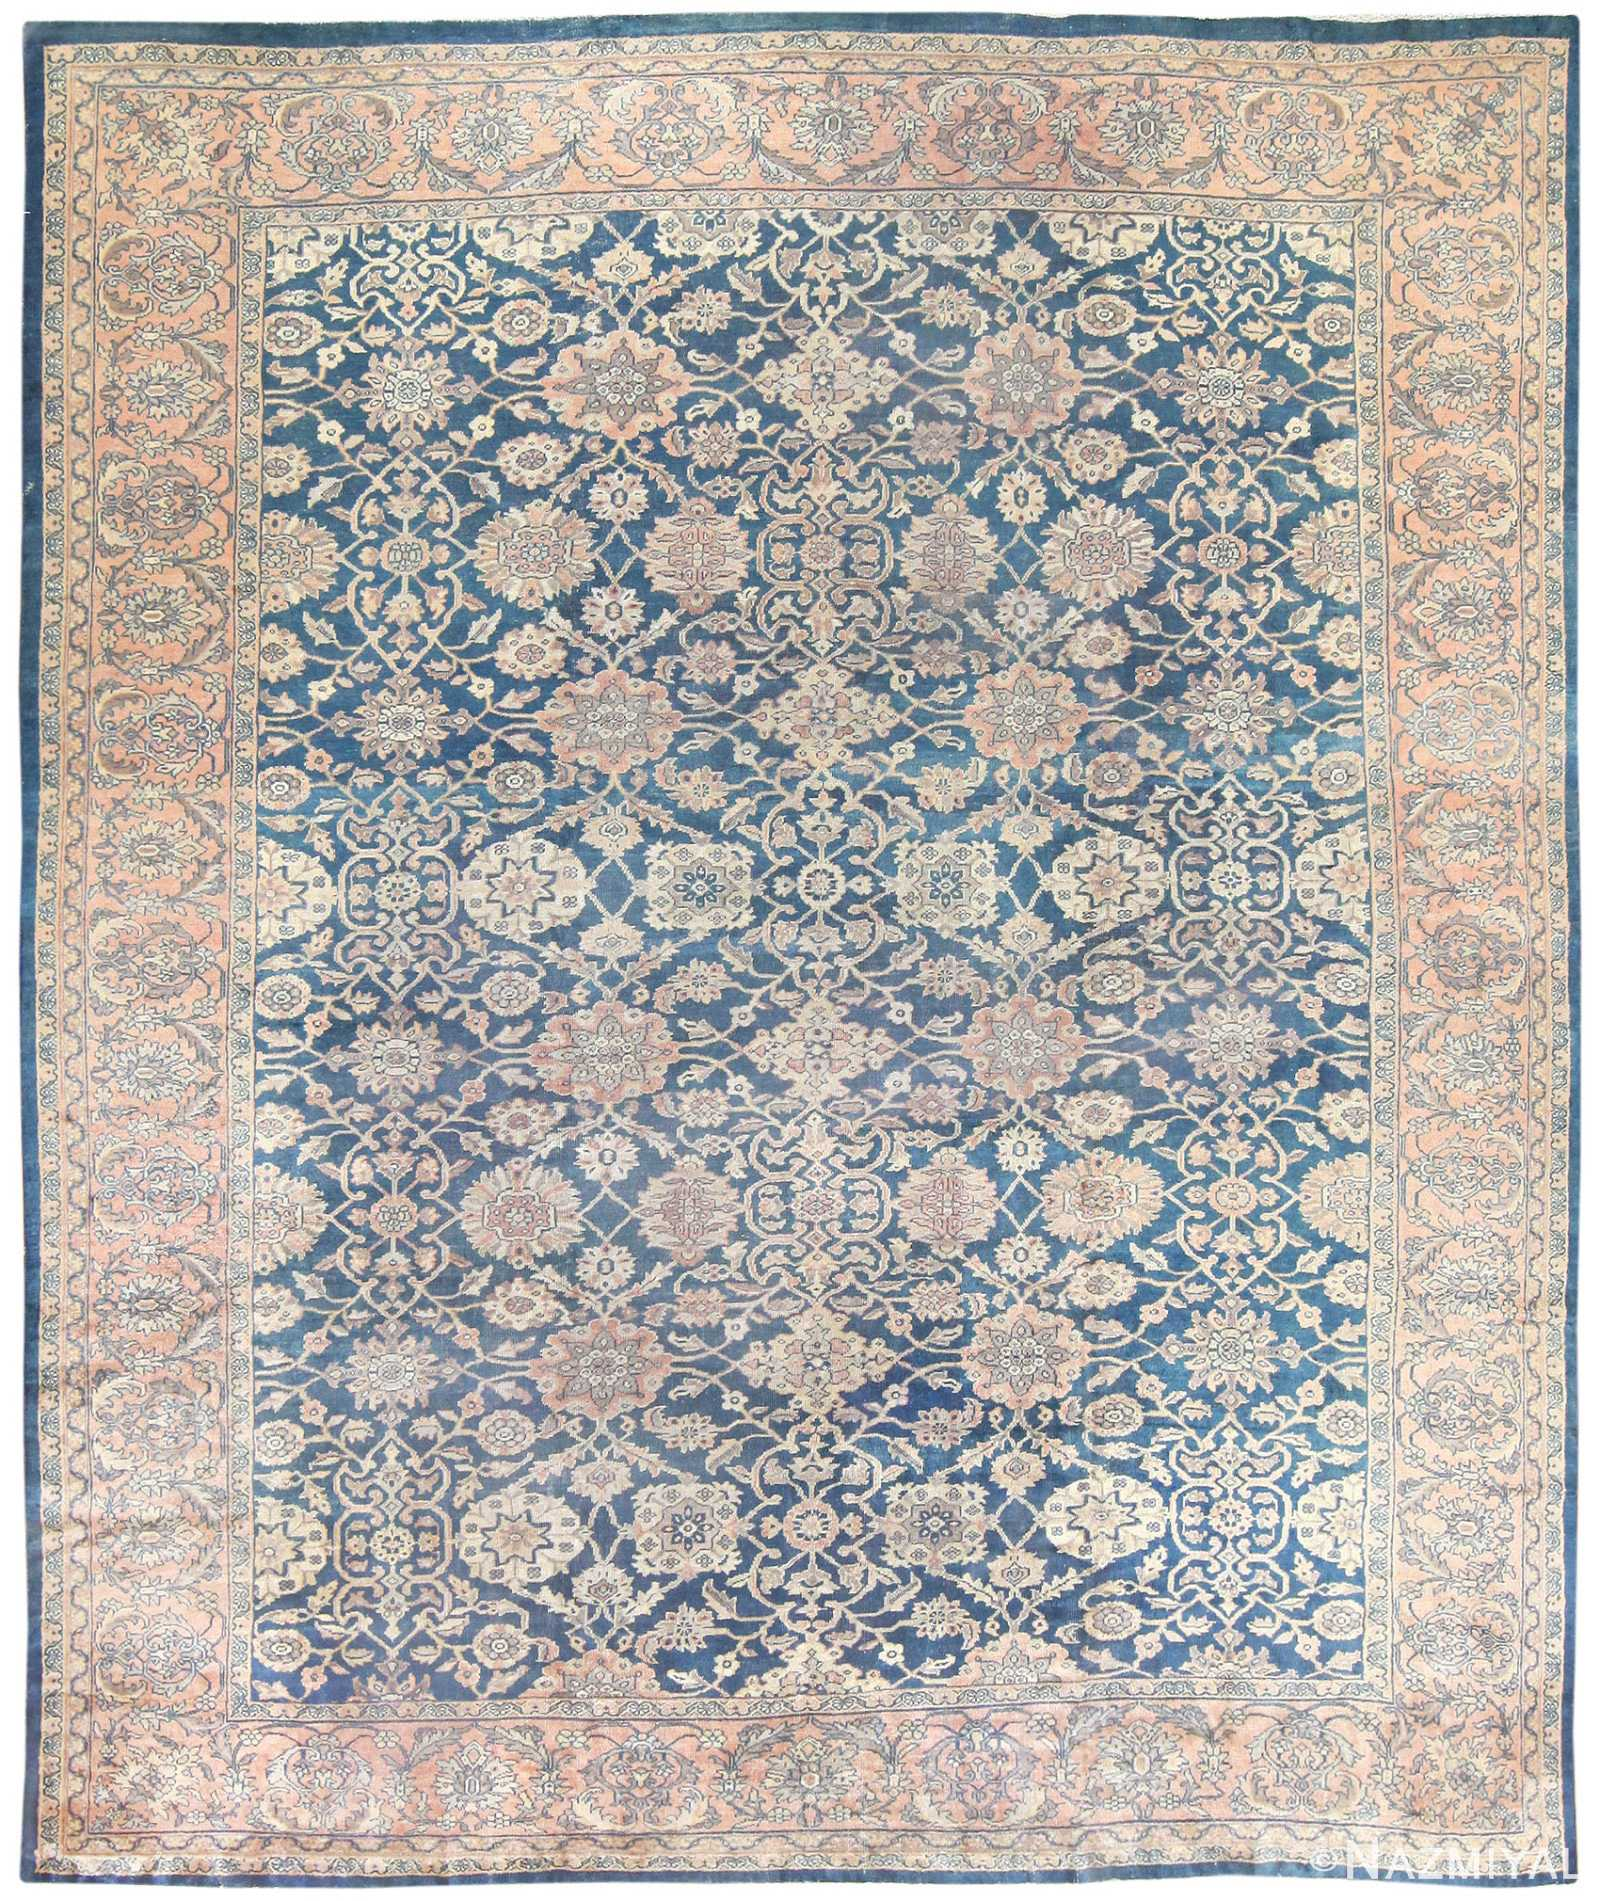 Vintage Persian Rugs: Large Antique Persian Sultanabad Rug 50078 By Nazmiyal